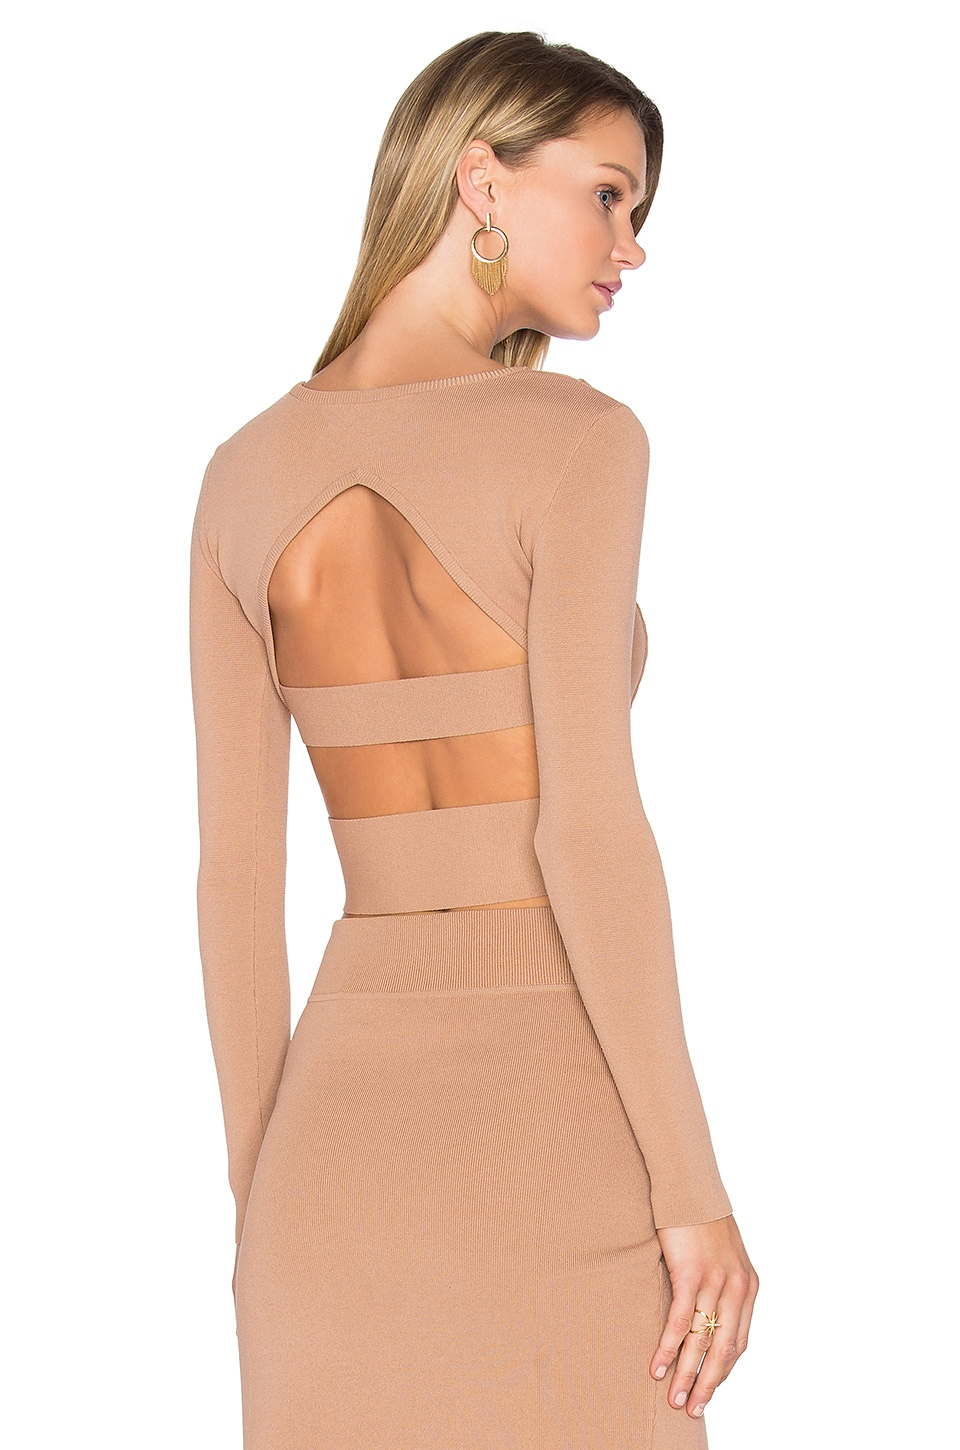 KENDALL + KYLIE Compact Long Sleeve Crop Top in Macaroon